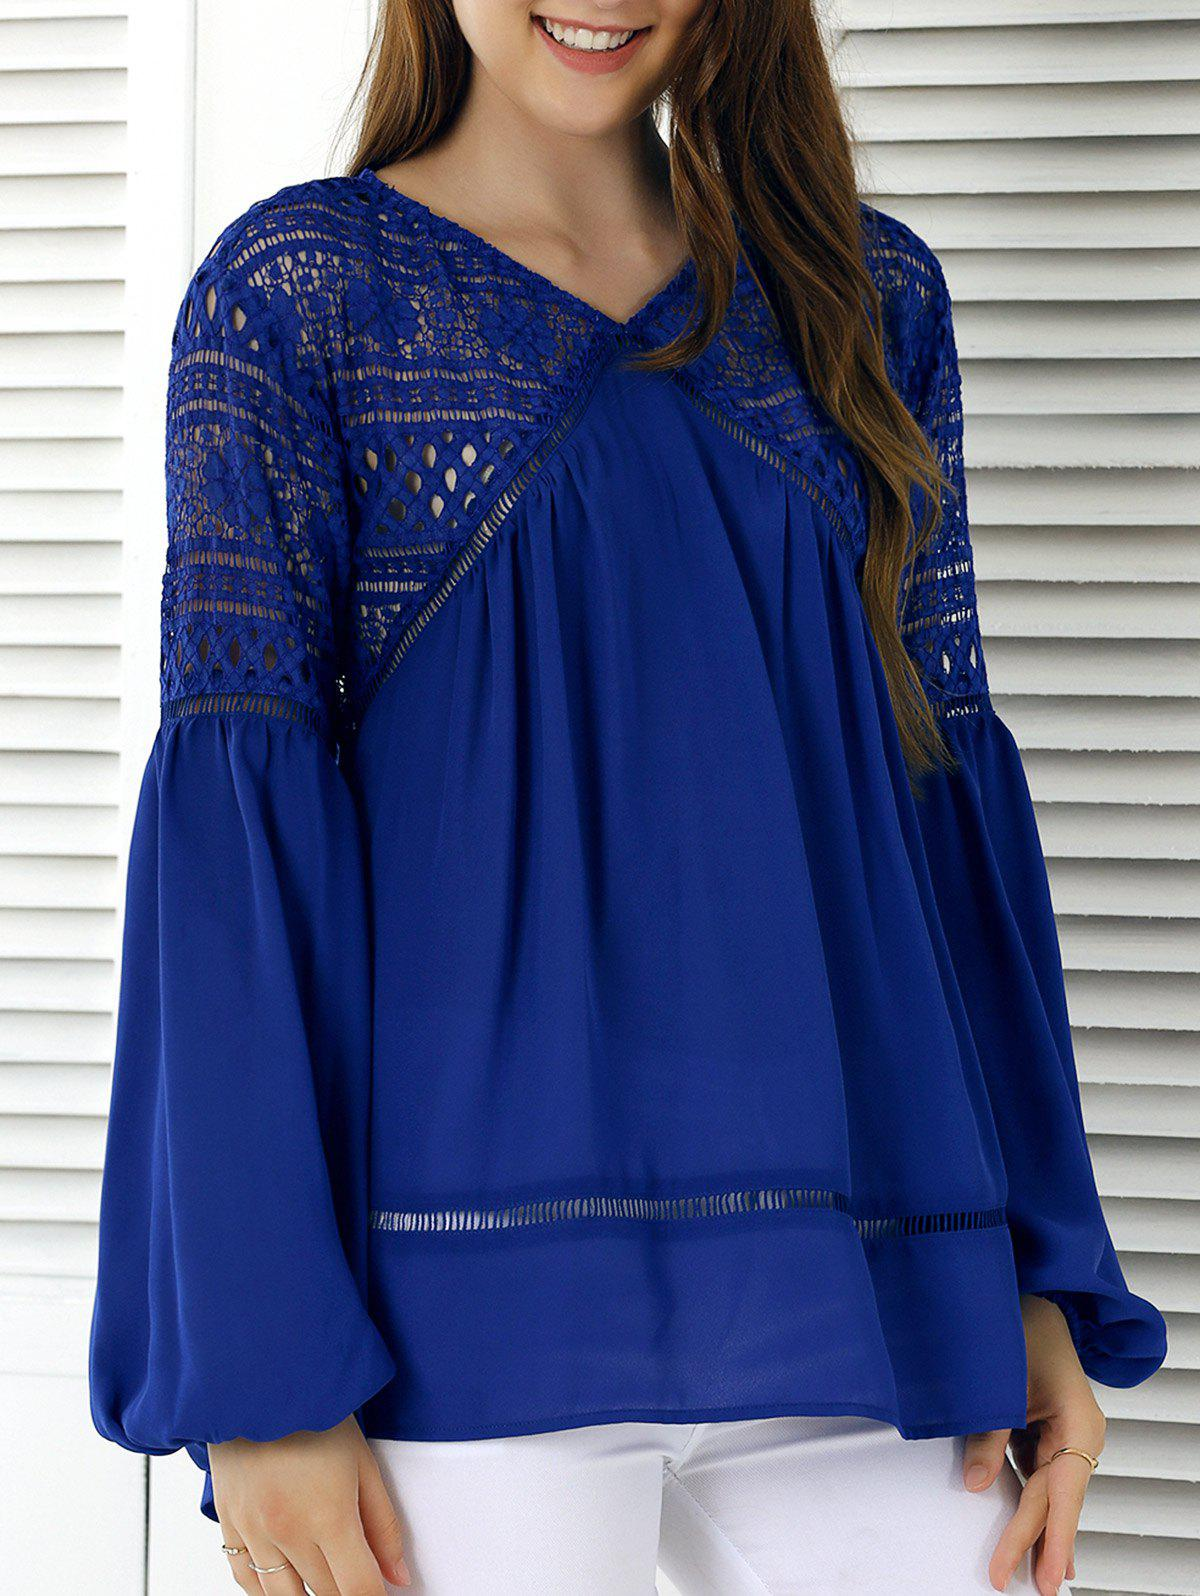 Lace Splicing Lantern Sleeve Hollow Out Blouse